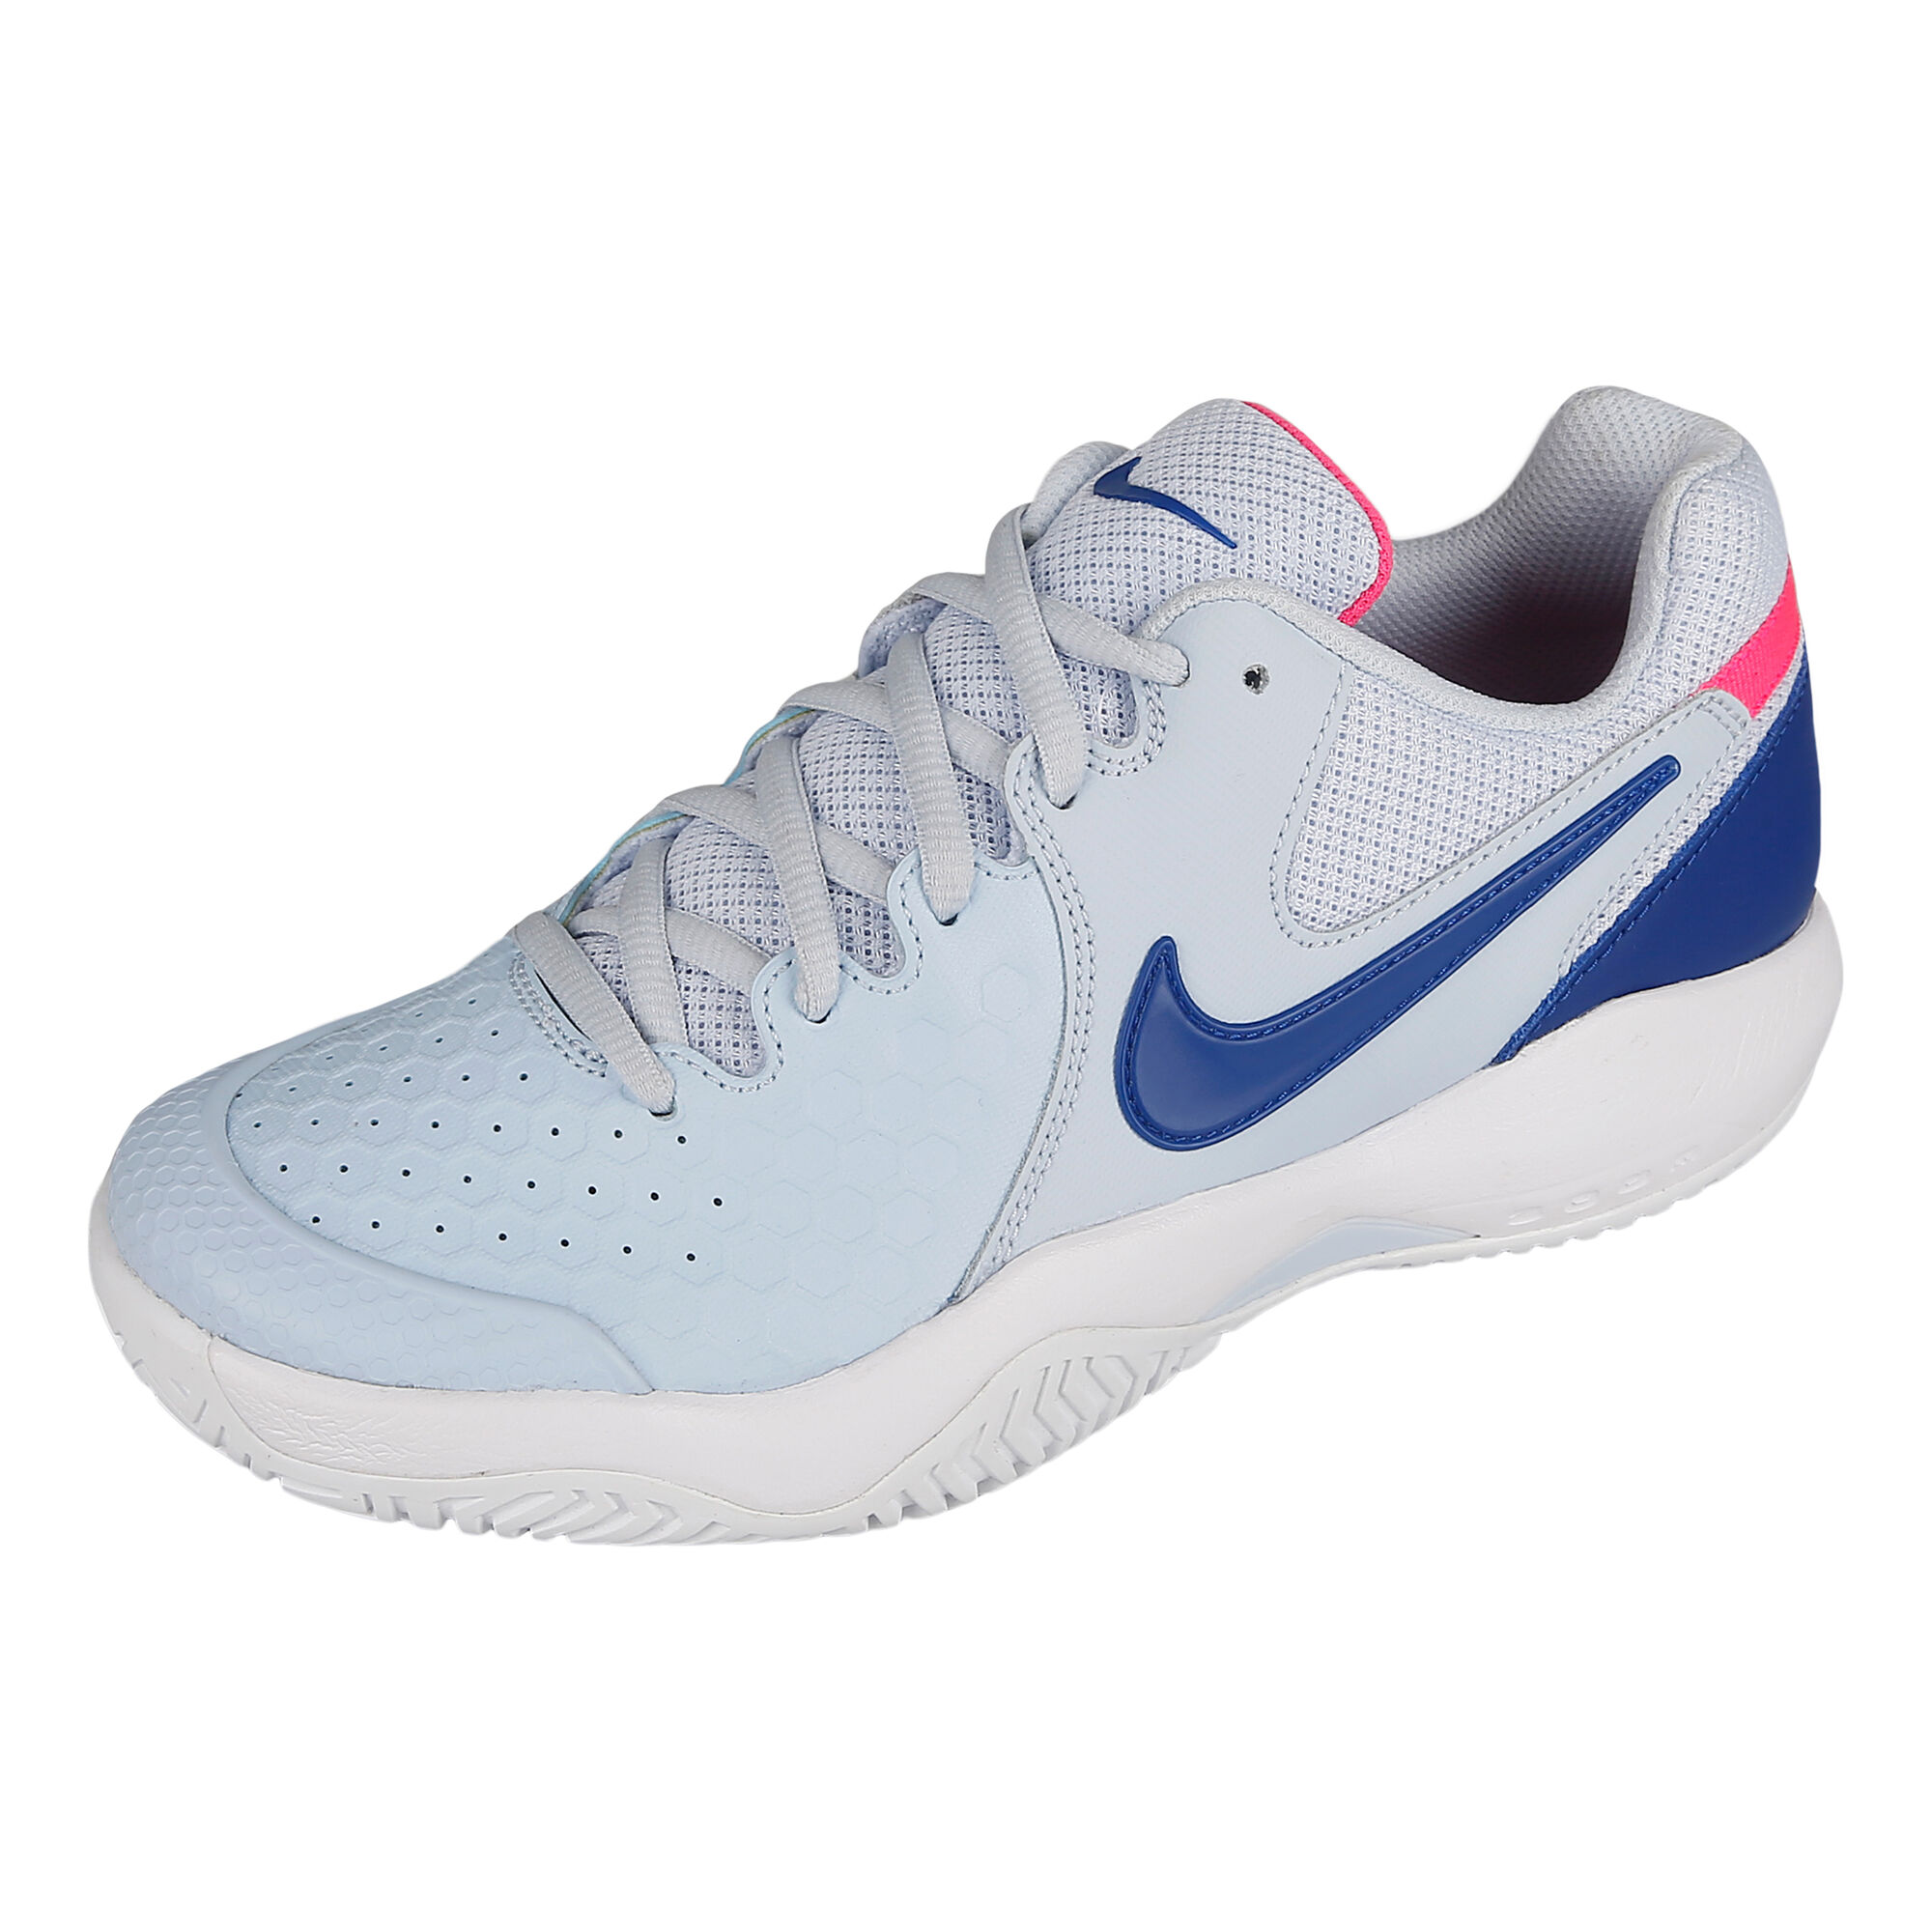 sufrir cangrejo título  buy Nike Air Zoom Resistance All Court Shoe Women - Light Blue, Blue online  | Tennis-Point